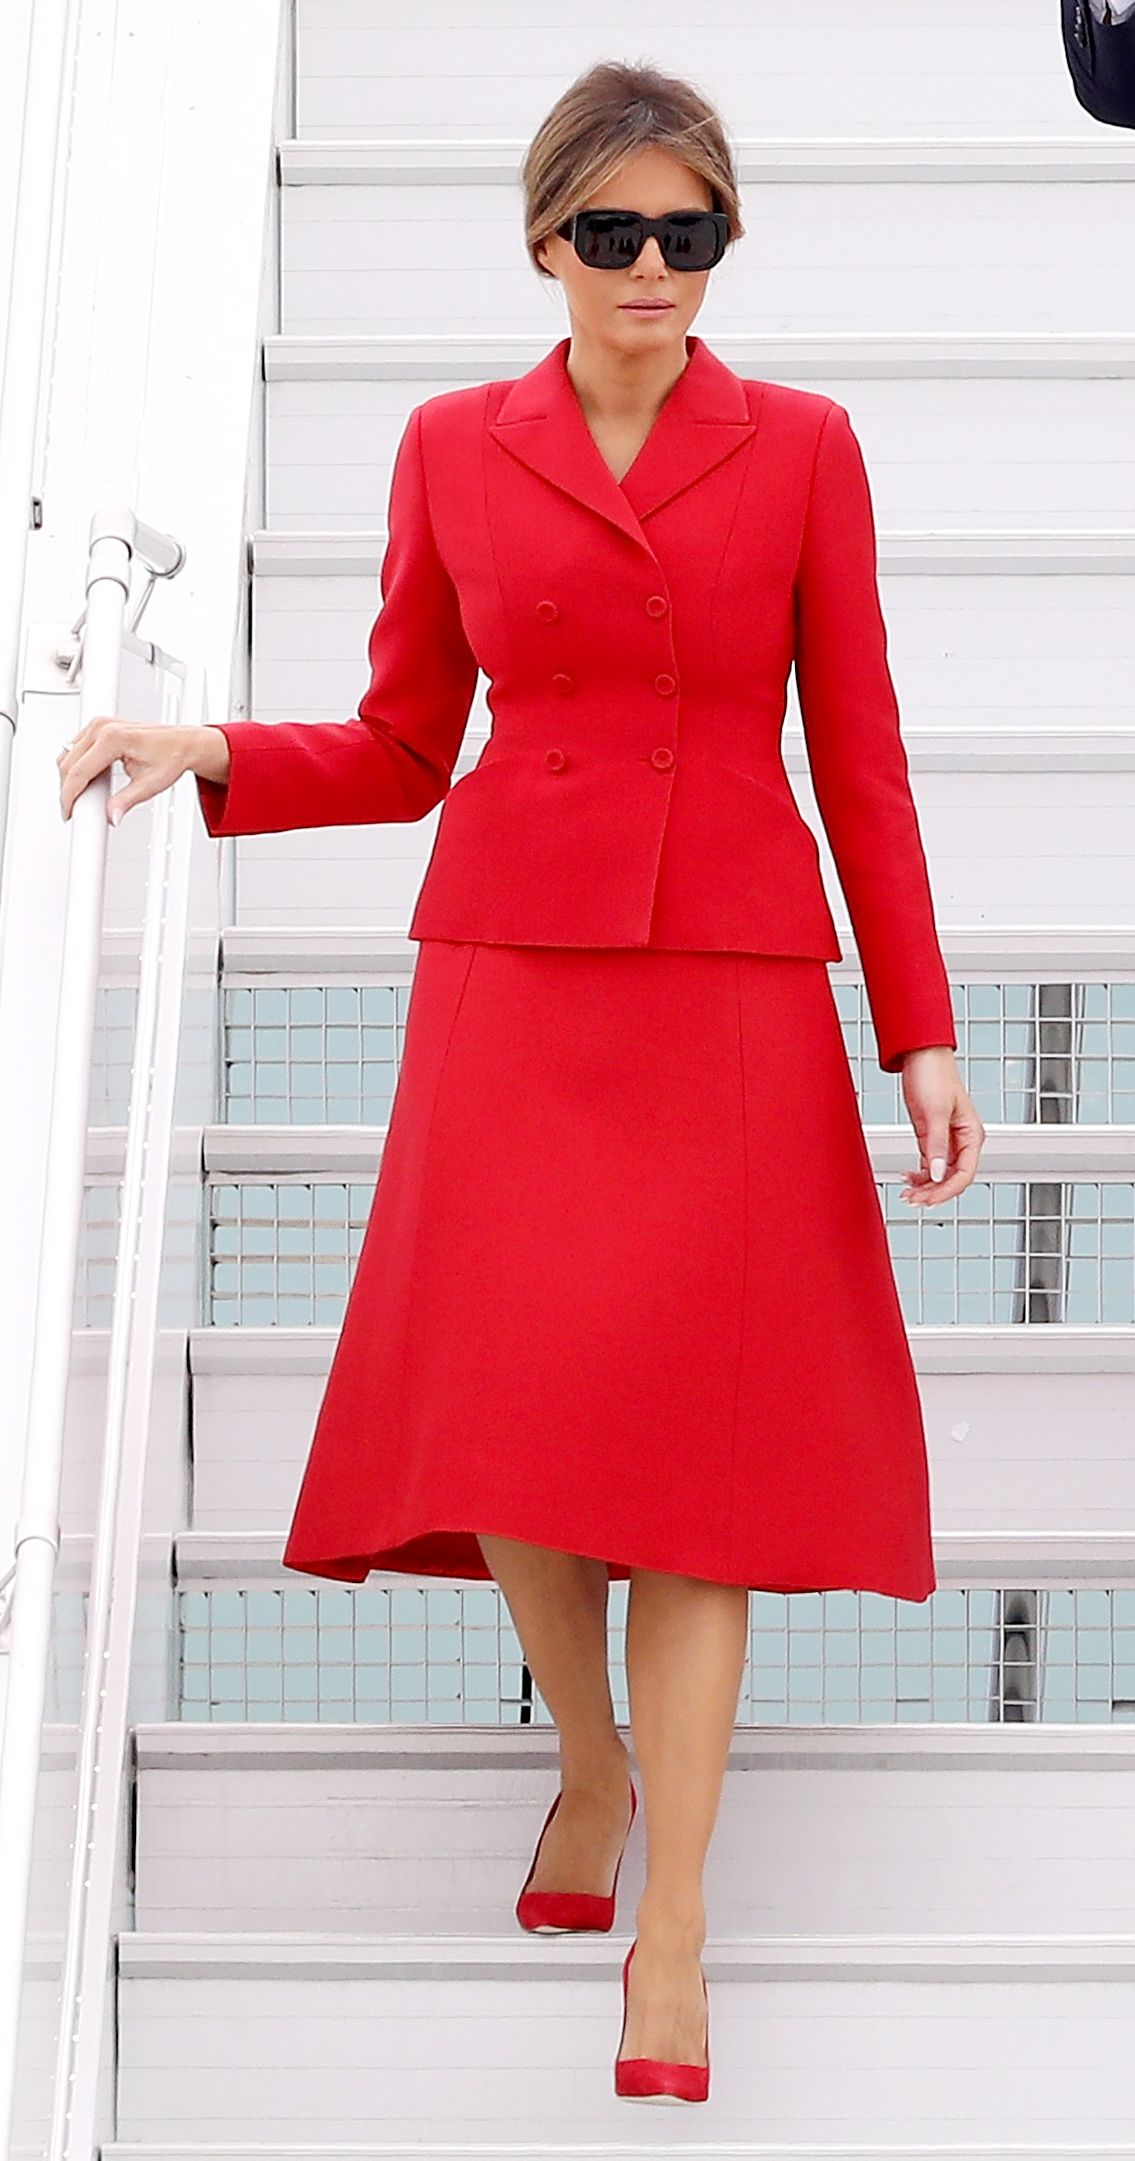 Melania Trump Wears Red Dior Skirt Suit To Touch Down In France Melania Trump Dress Trump Fashion Milania Trump Style